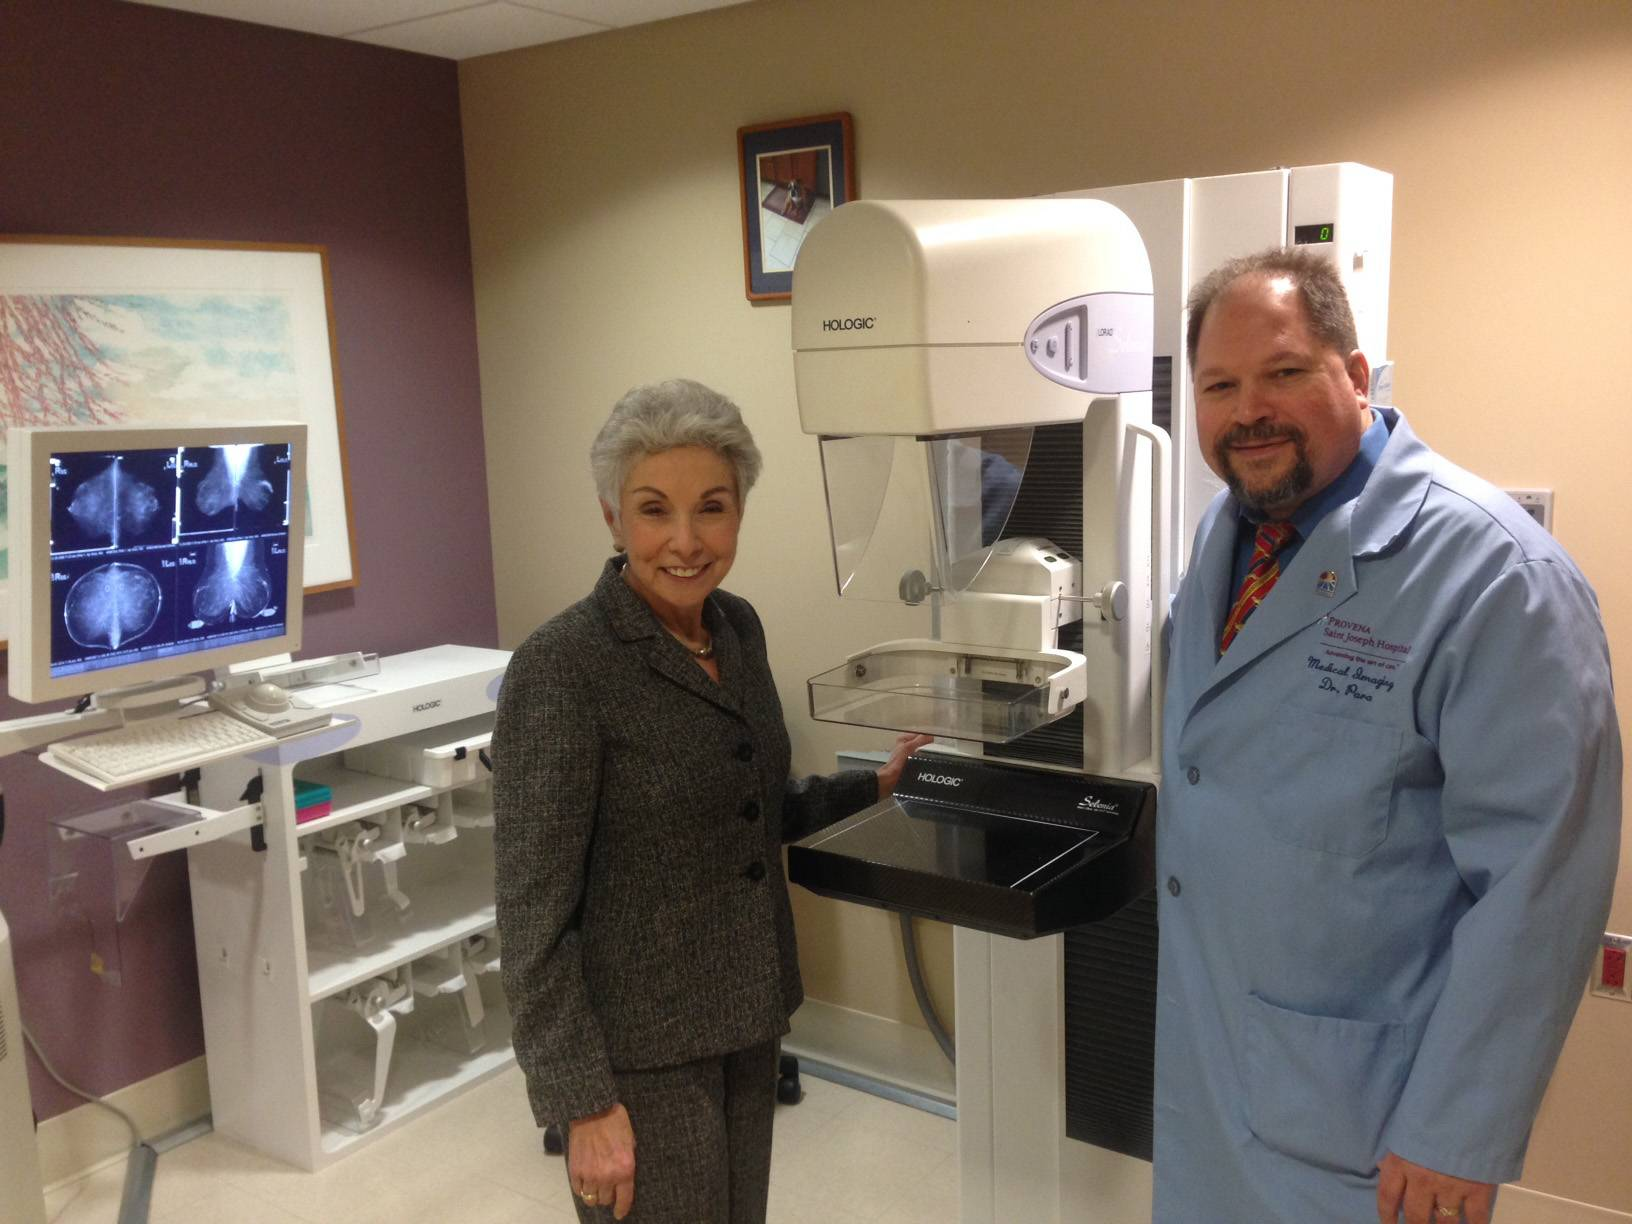 A Silver Lining Foundation in Chicago has partnered with Presence St. Joseph Hospital in Elgin to offer free mammograms for uninsured and underinsured women. Pictured are Sandy Goldberg, left, founder of the foundation, and Dr. Patrick Para, the hospital's medical director of medical imaging.